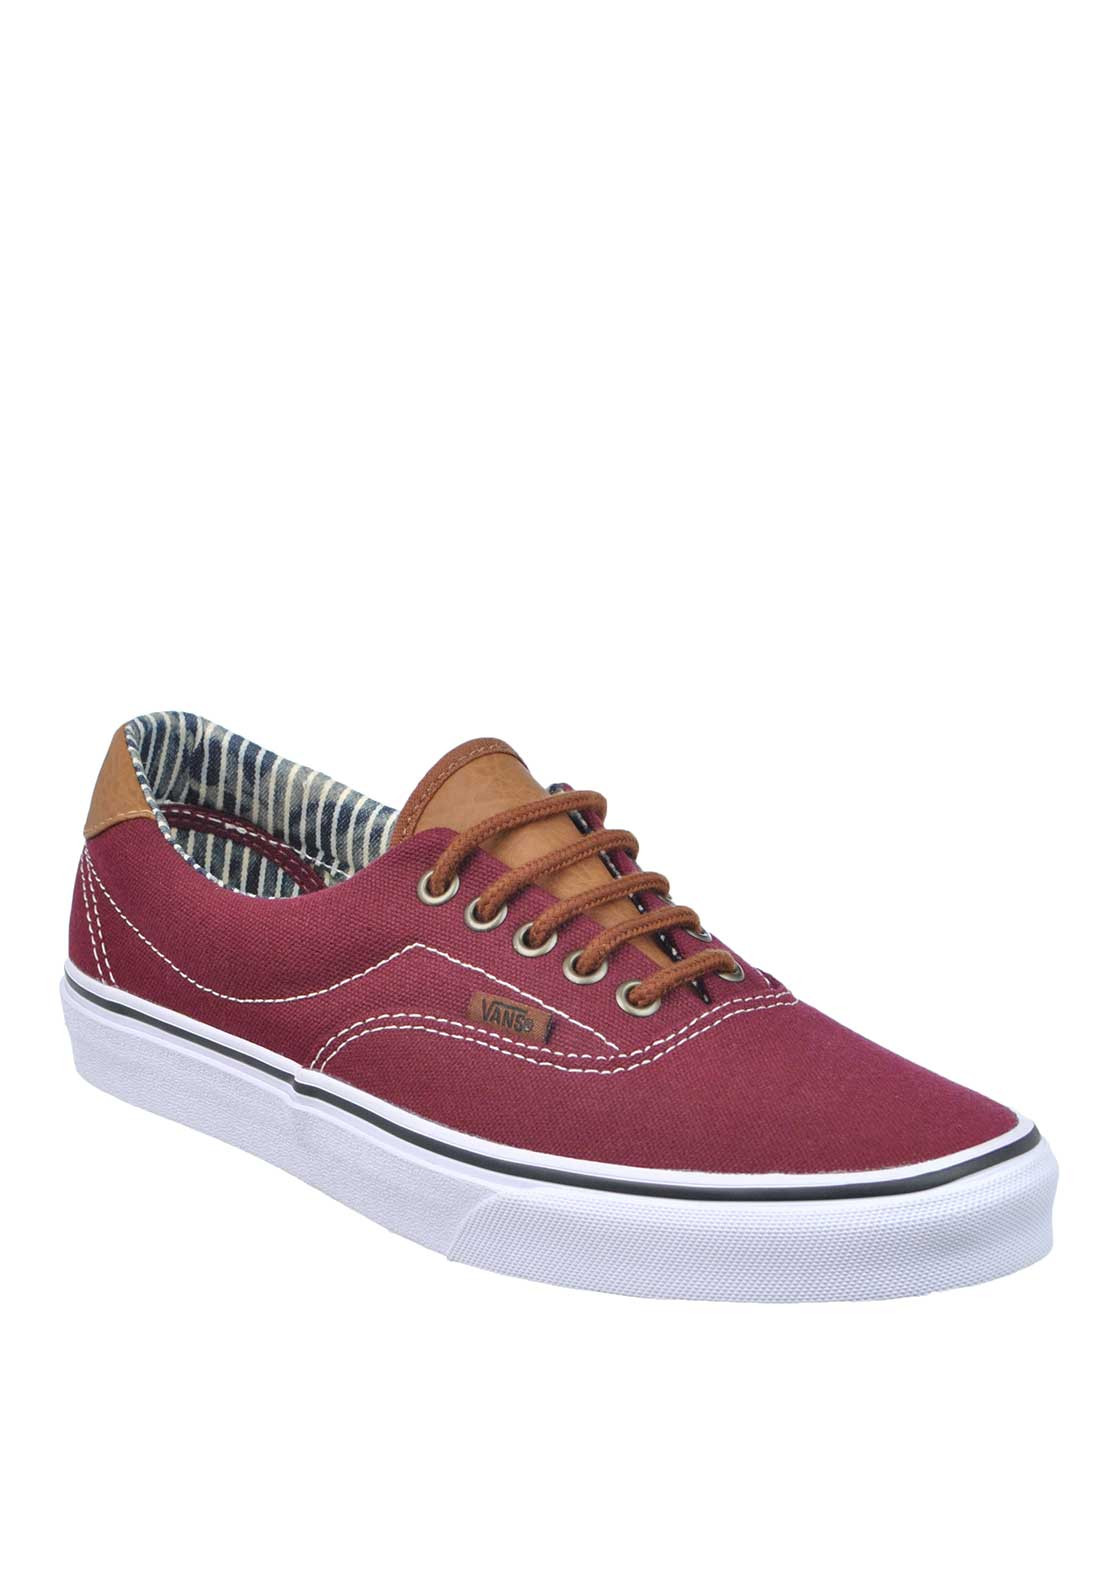 Vans Mens C&L Era 59 Lace Up Trainers, Port Royale